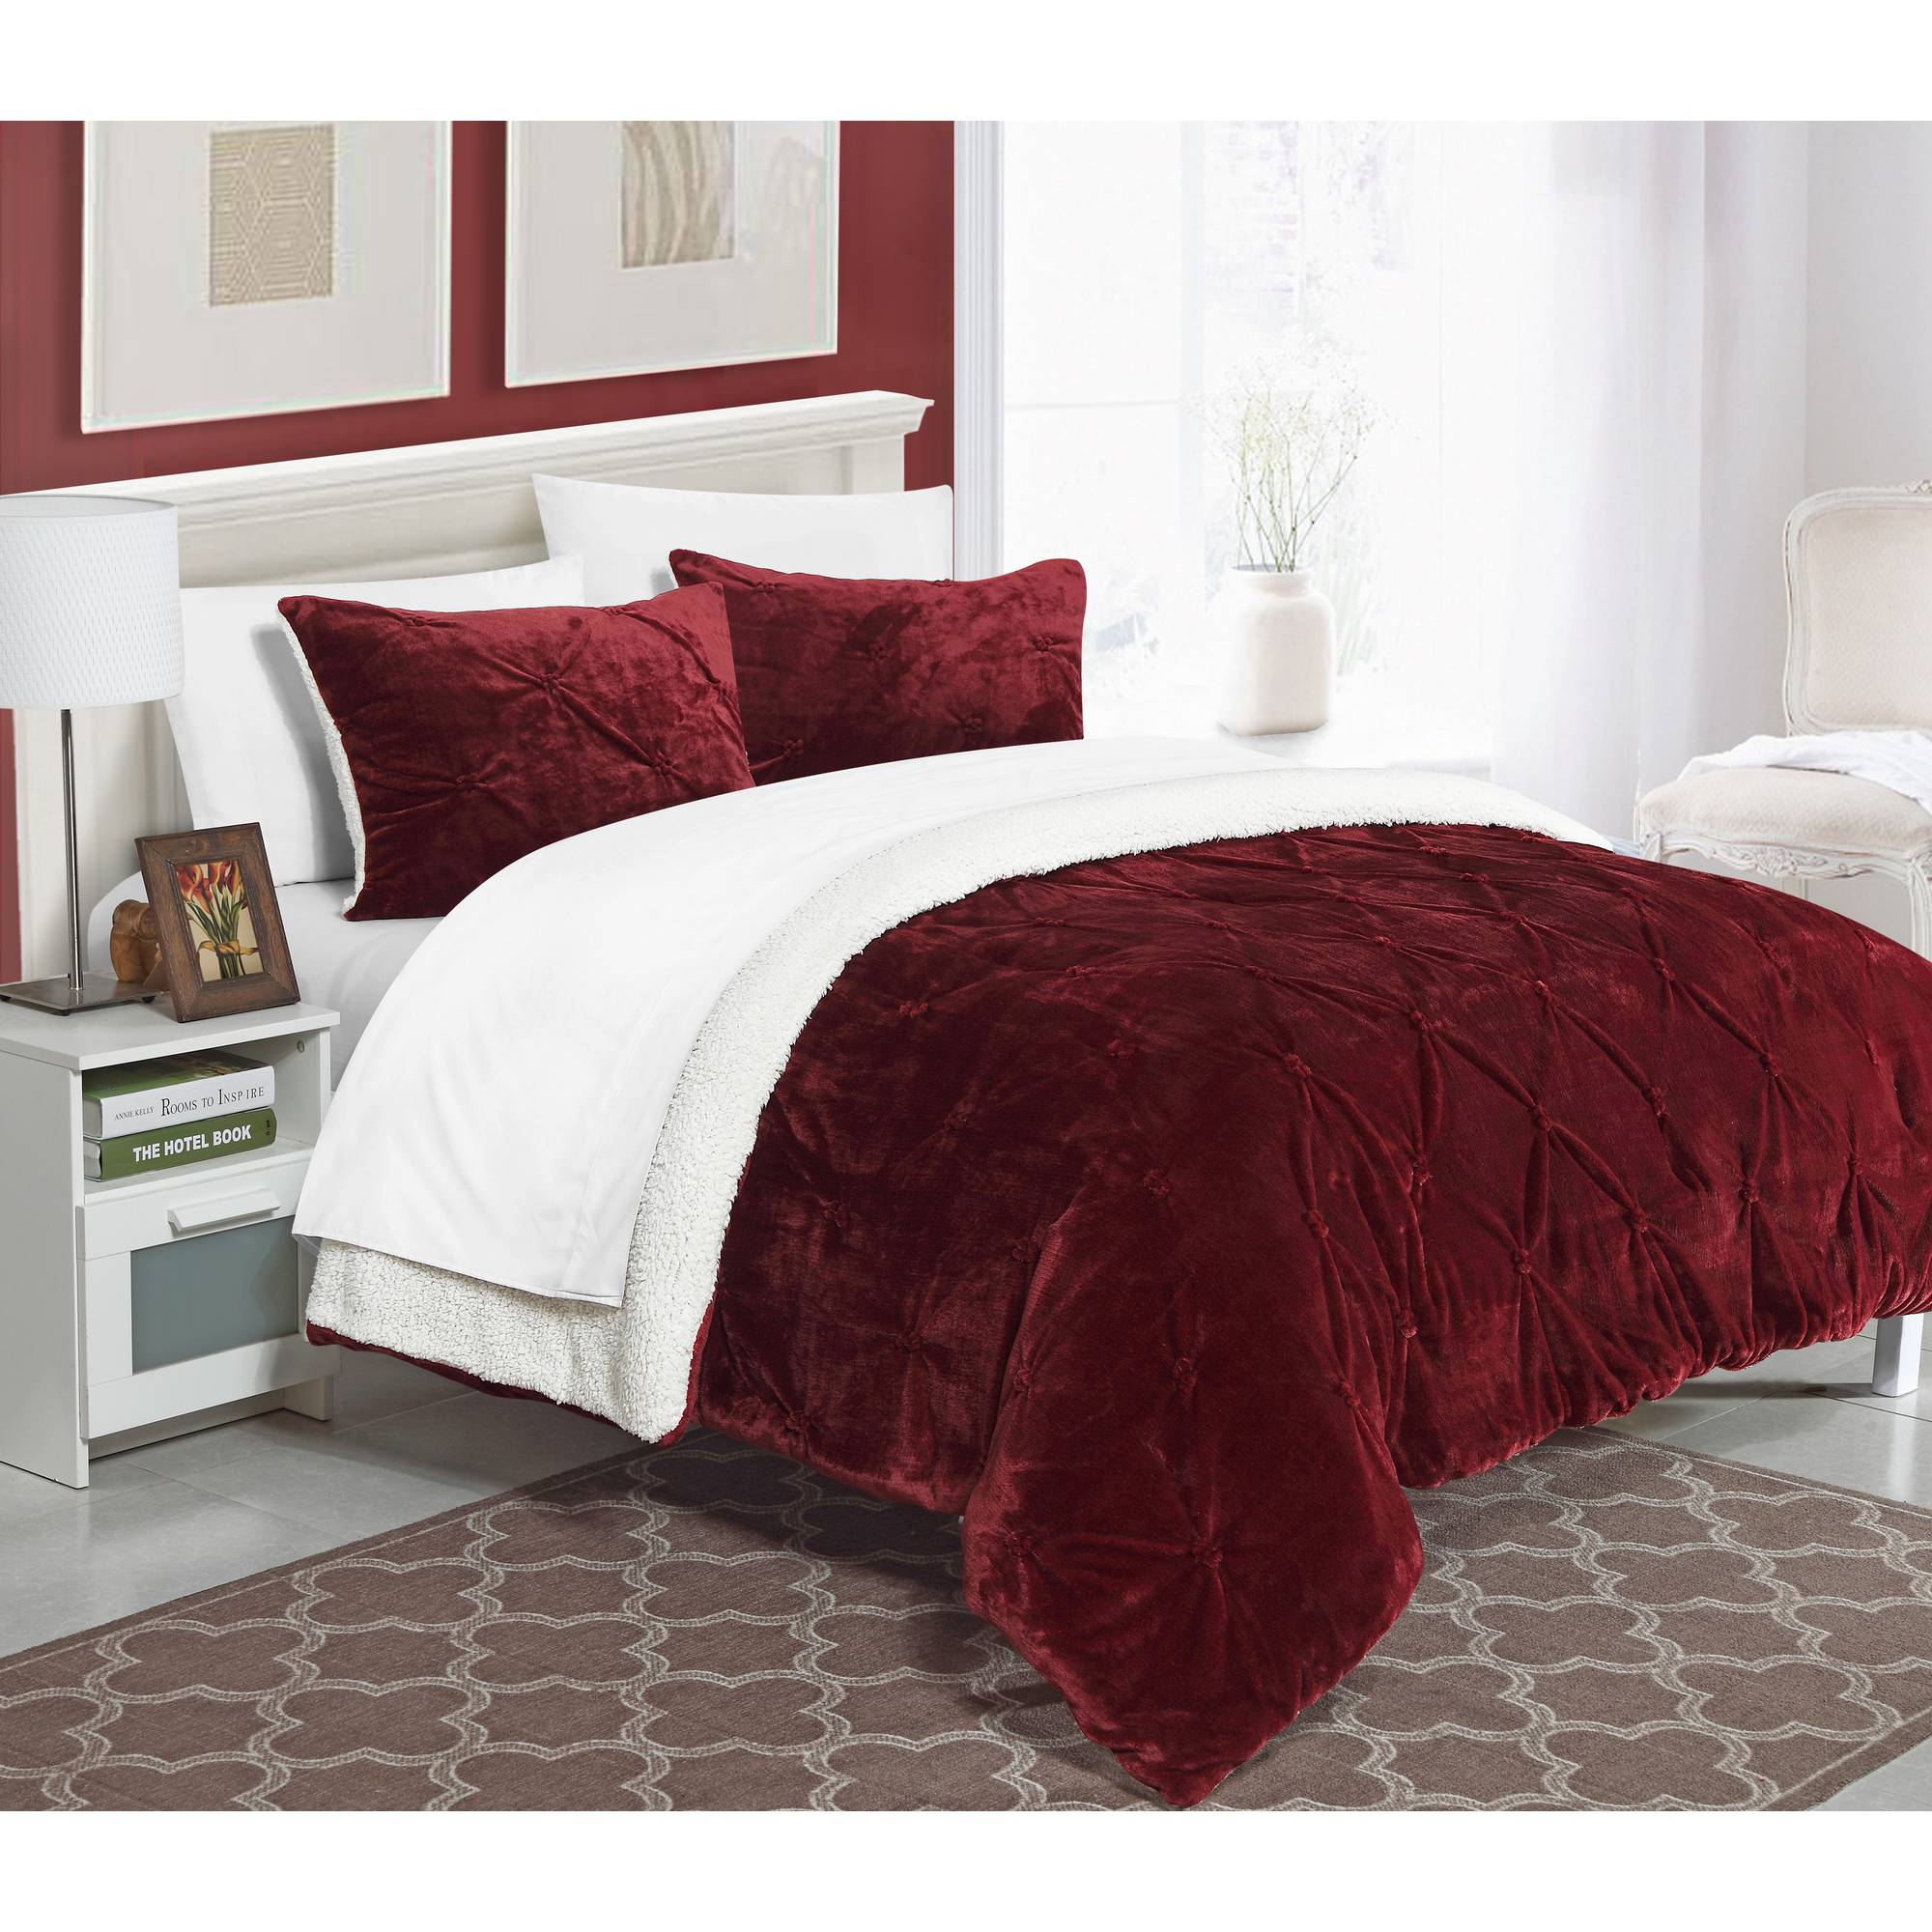 chic home 3 piece chiara pinch pleated ruffled and pin tuck sherpa lined queen bed in a bag comforter set burgundy